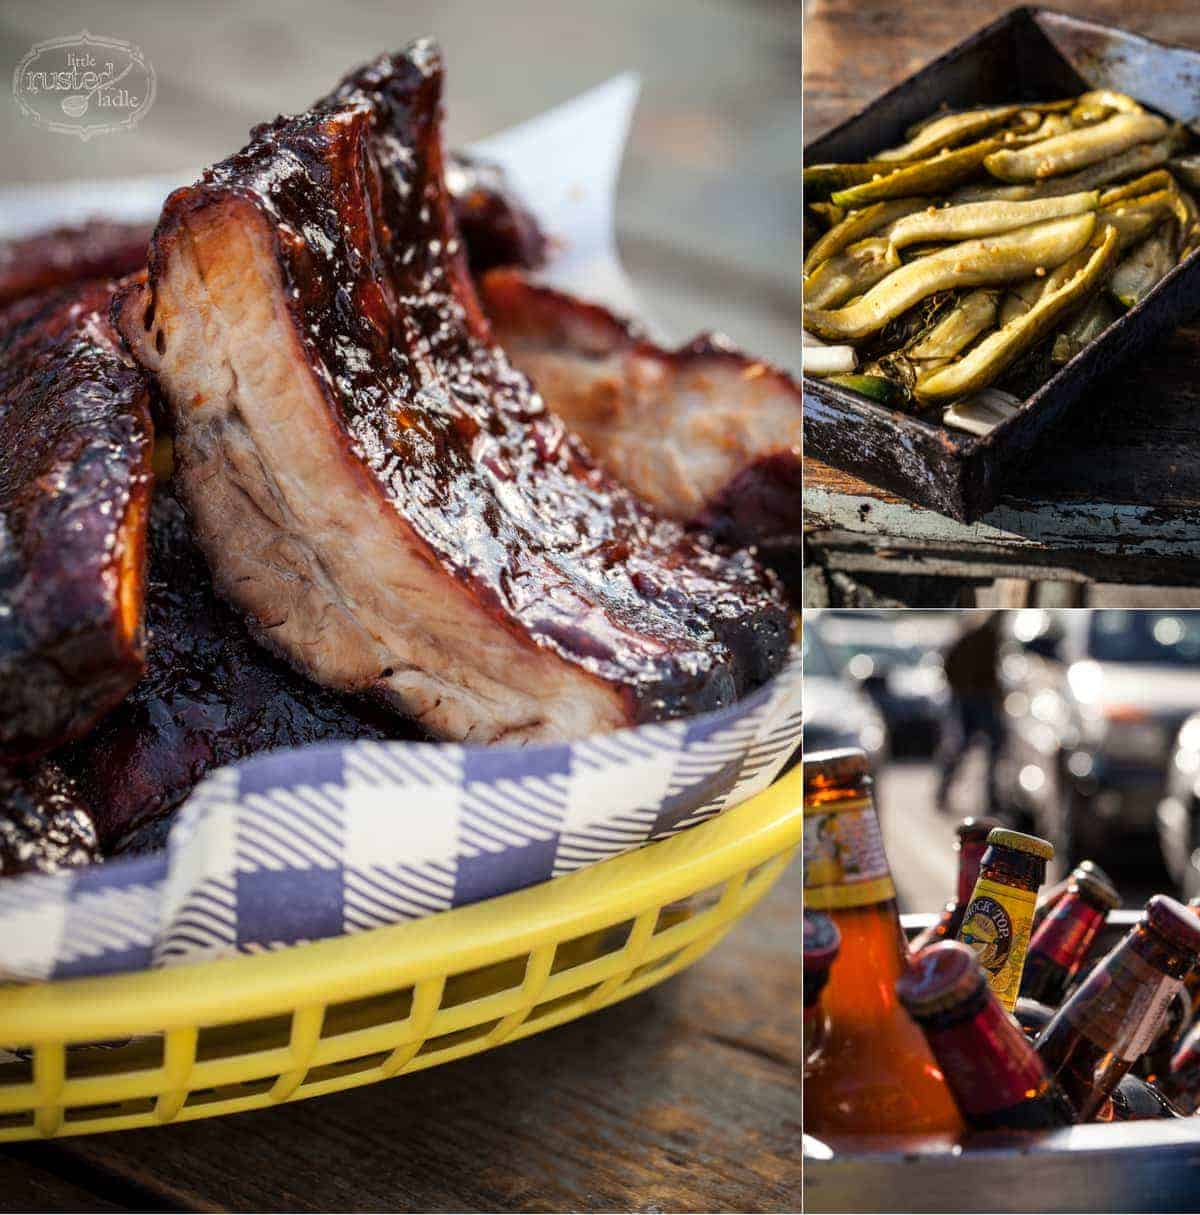 Tailgating Grilling Recipes_Little Rusted Ladle_Jena Carlin Photography_4 96WM